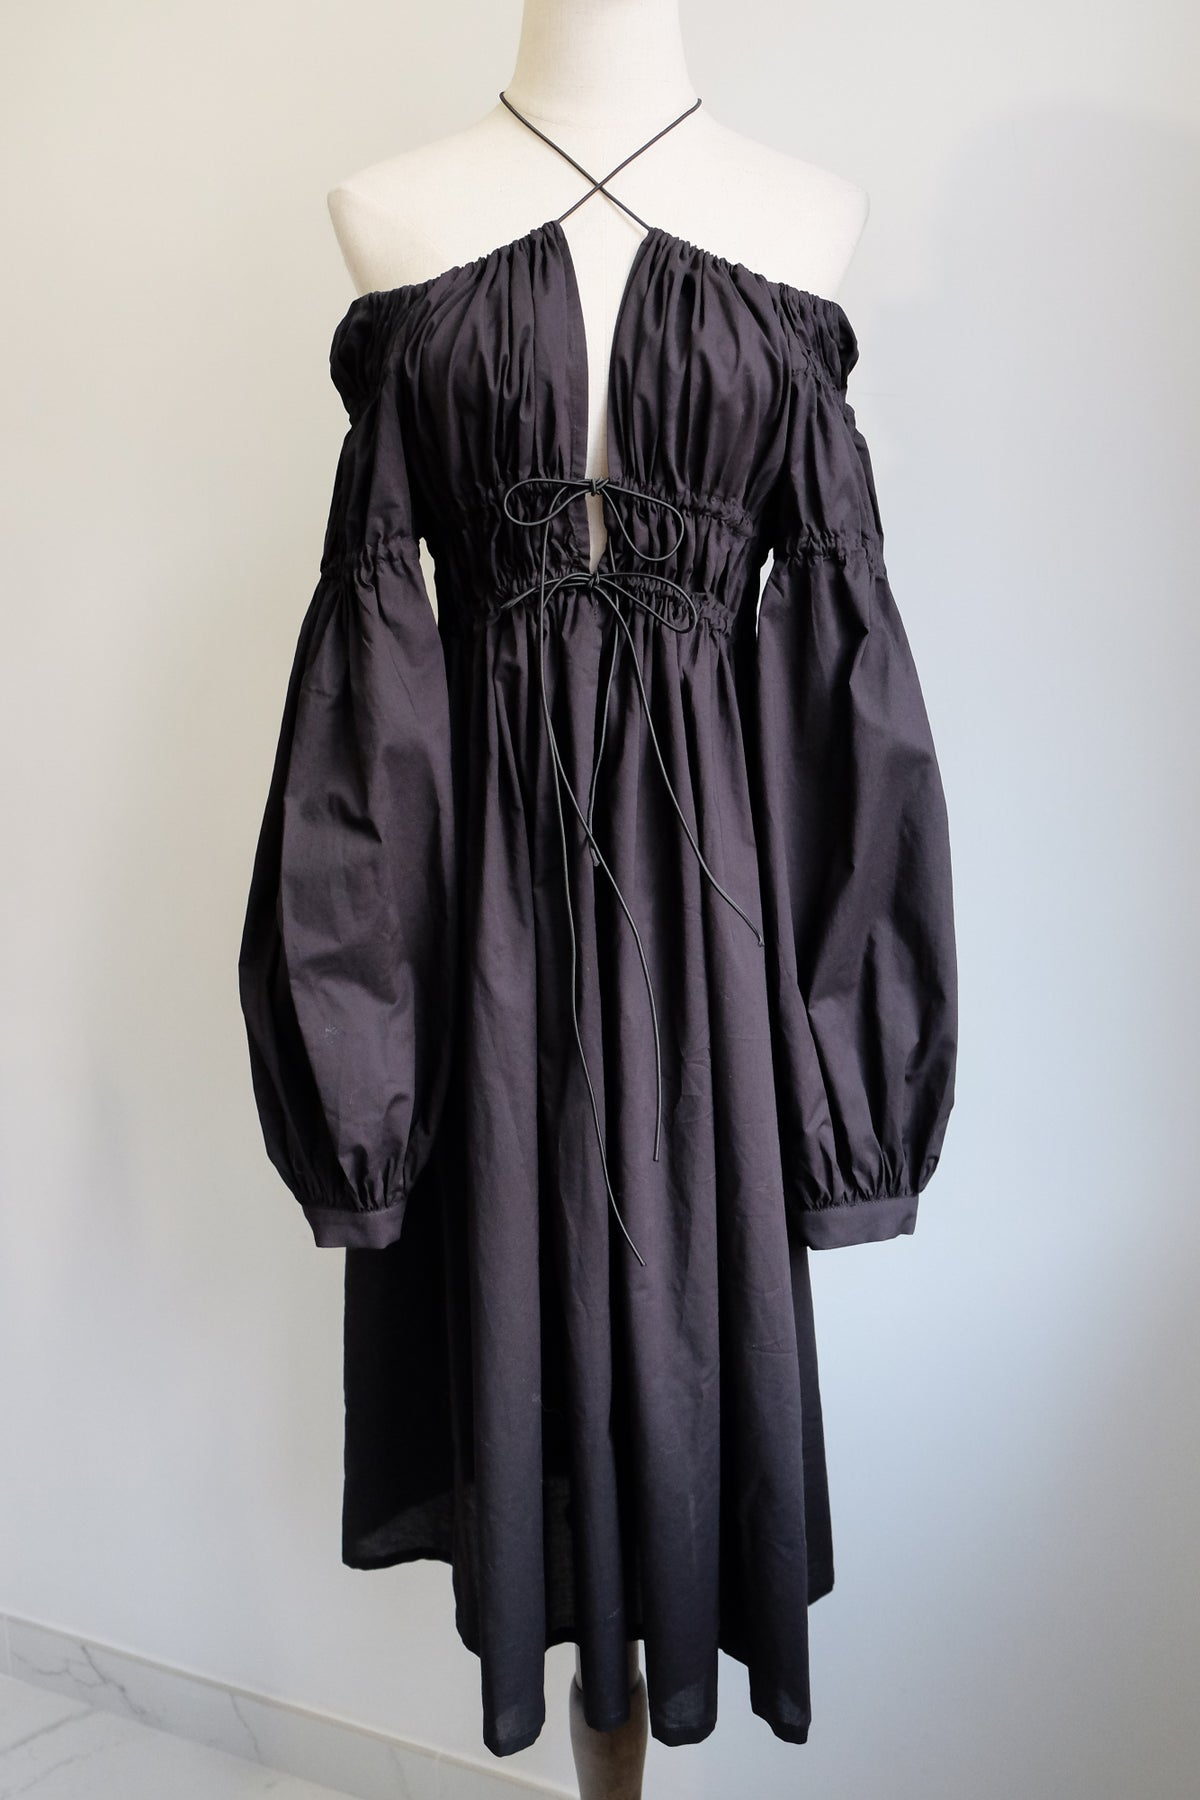 Image of SAMPLE SALE - Unreleased Black Midi Dress 022